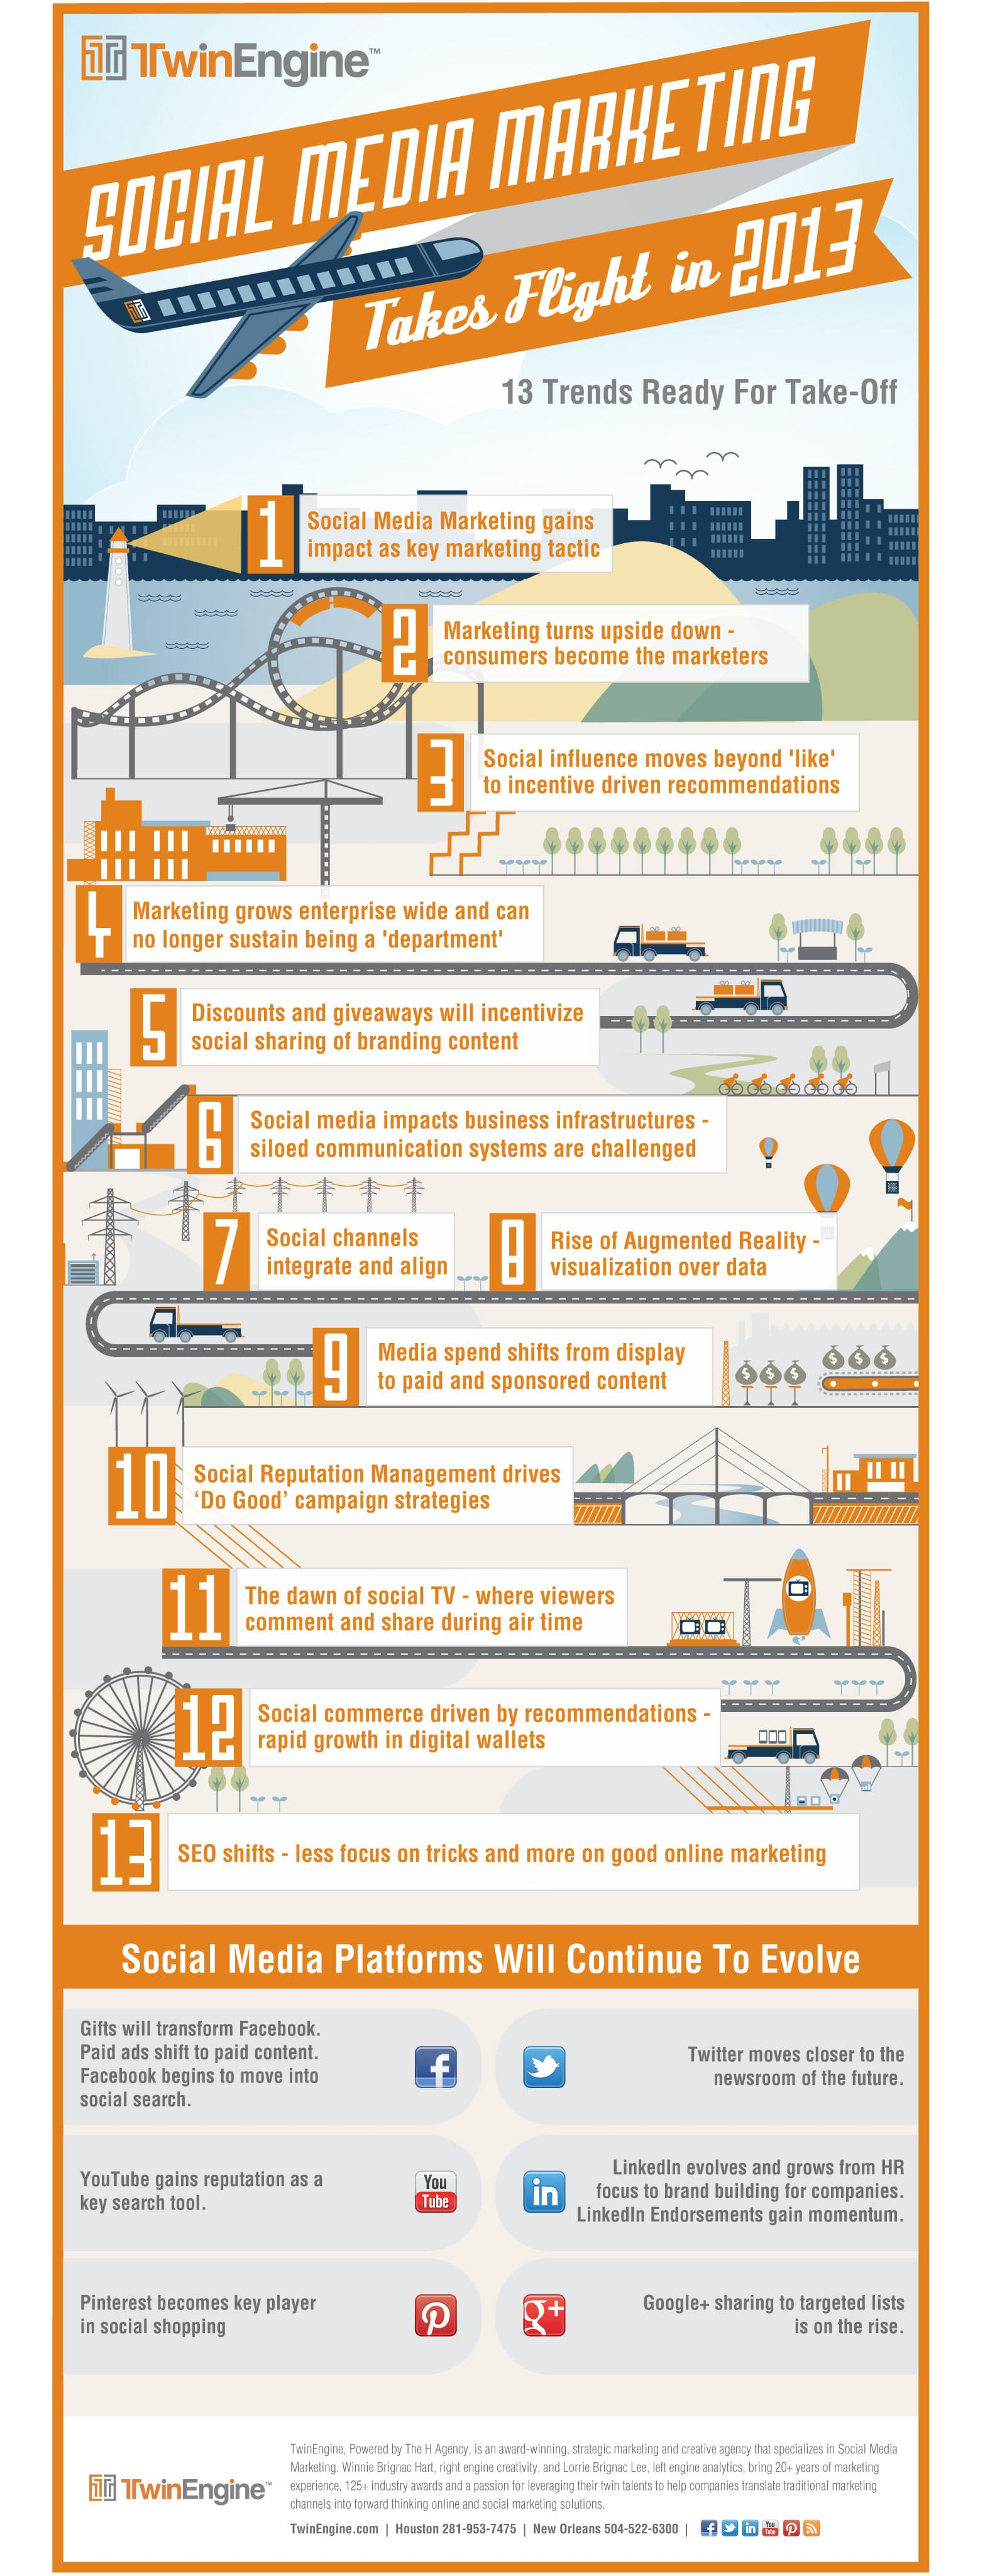 internet-marketing-trends-2013-infographic